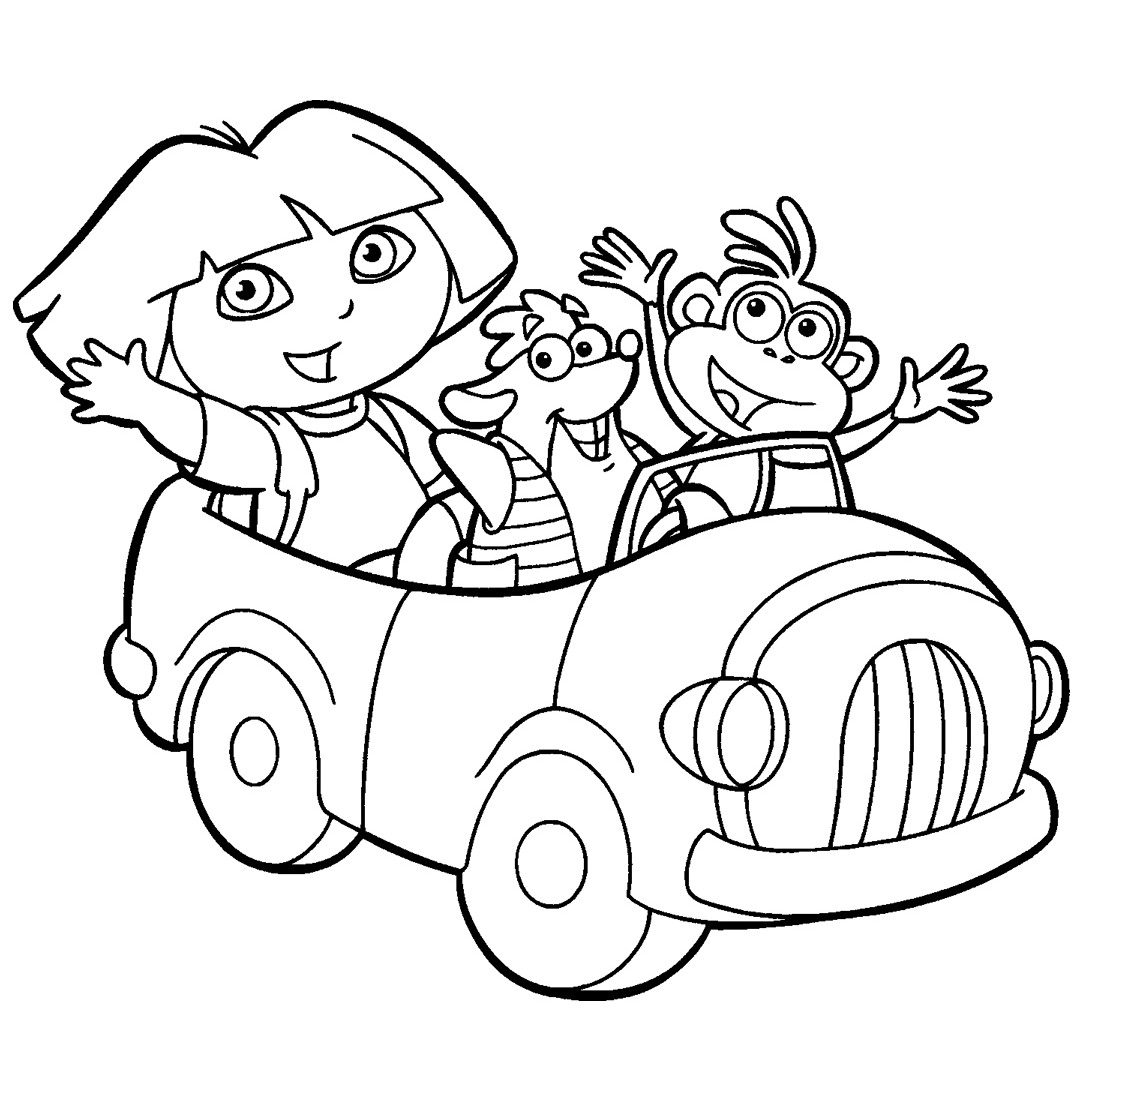 free coloring pages dora free printable dora the explorer coloring pages for kids free pages dora coloring